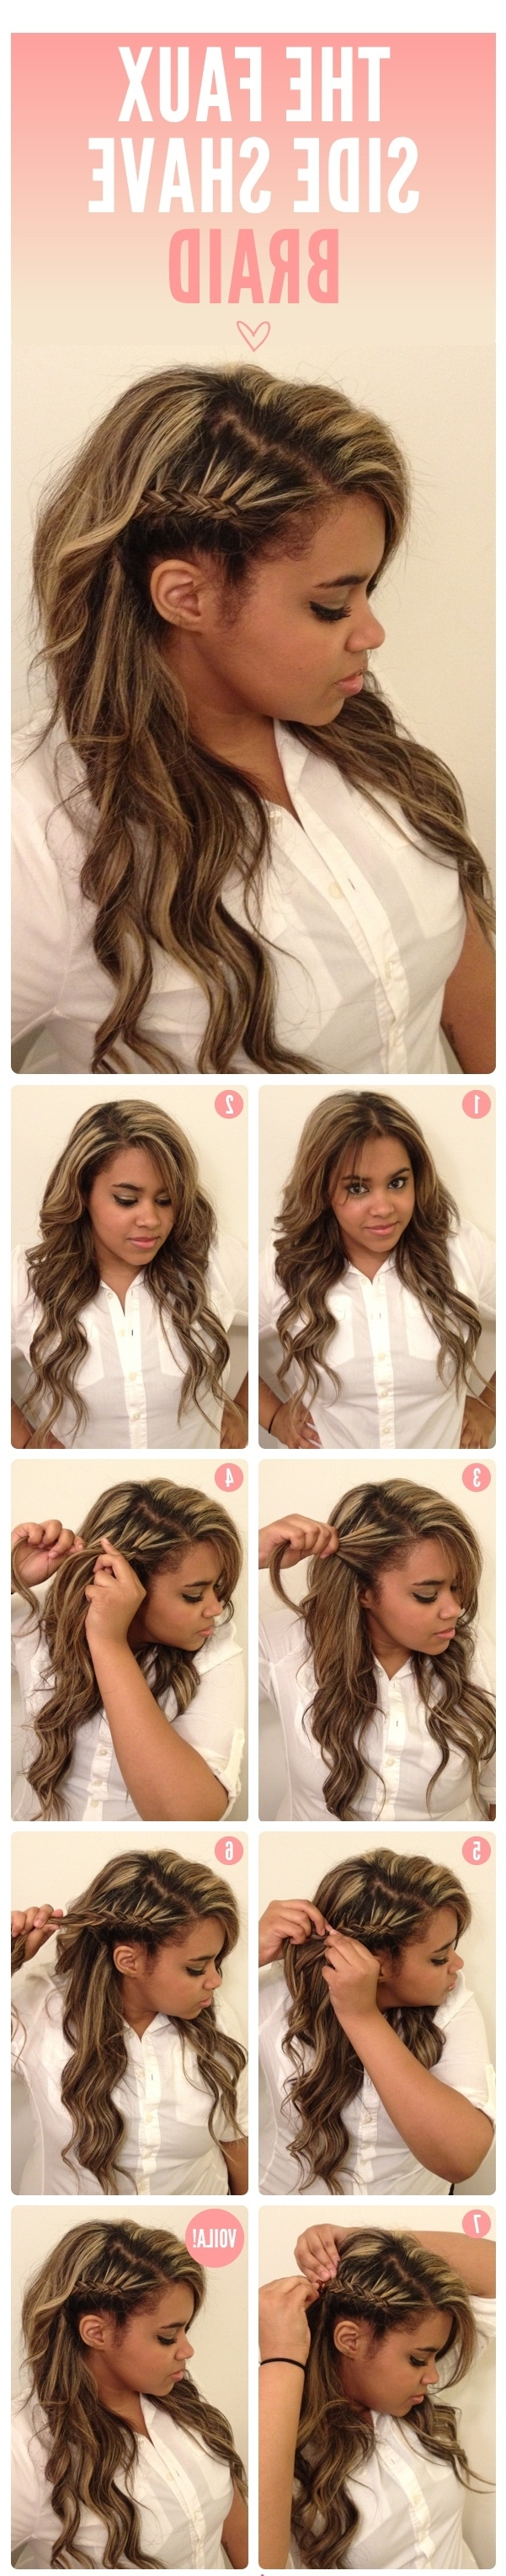 25 Diy Braided Hairstyles You Really Have To Pin Intended For Trendy Pinned Up French Plaits Hairstyles (View 3 of 15)